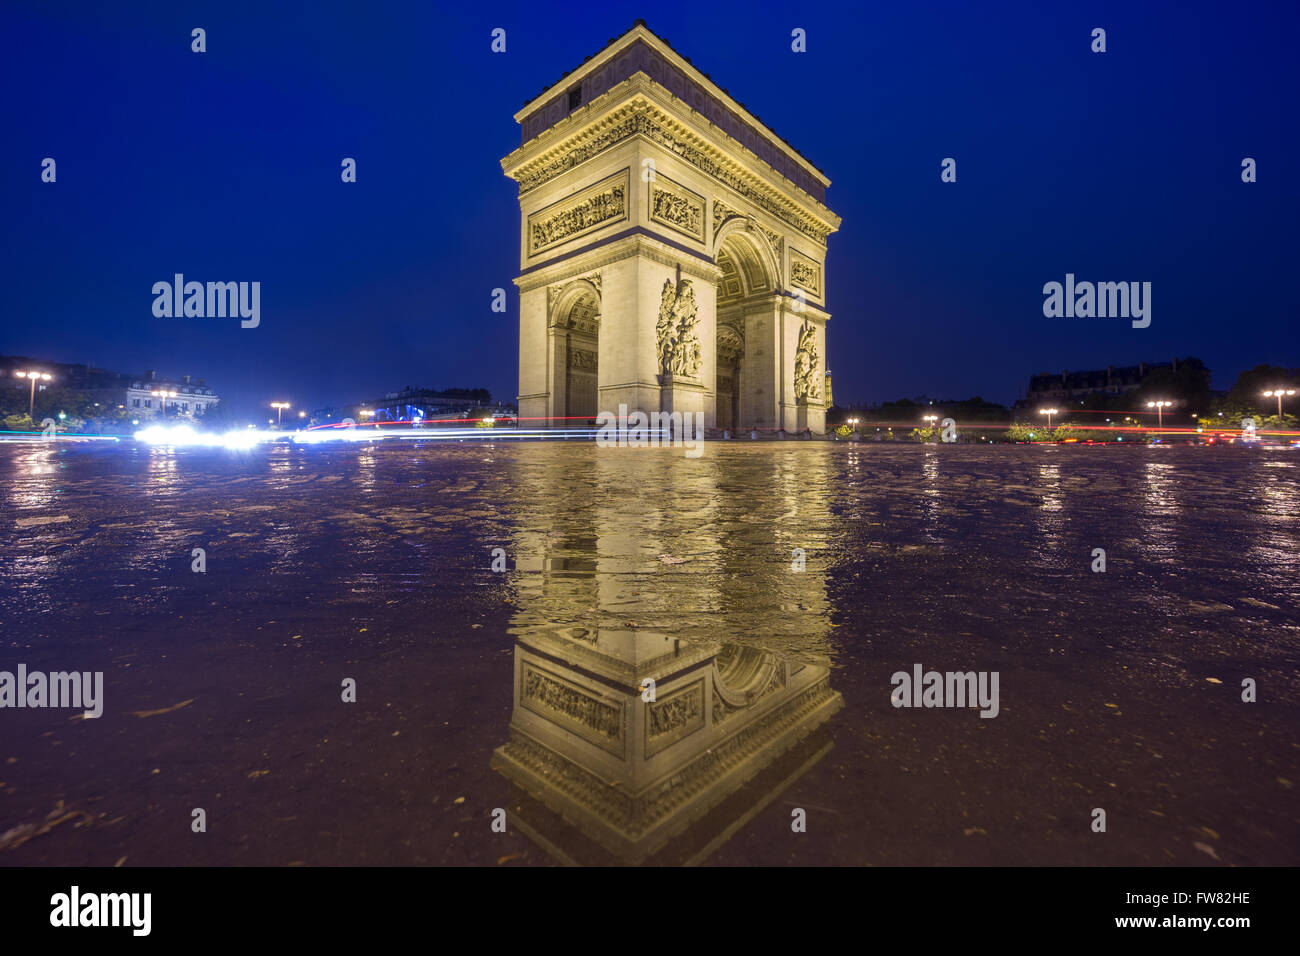 Arc de Triomphe at night - Stock Image